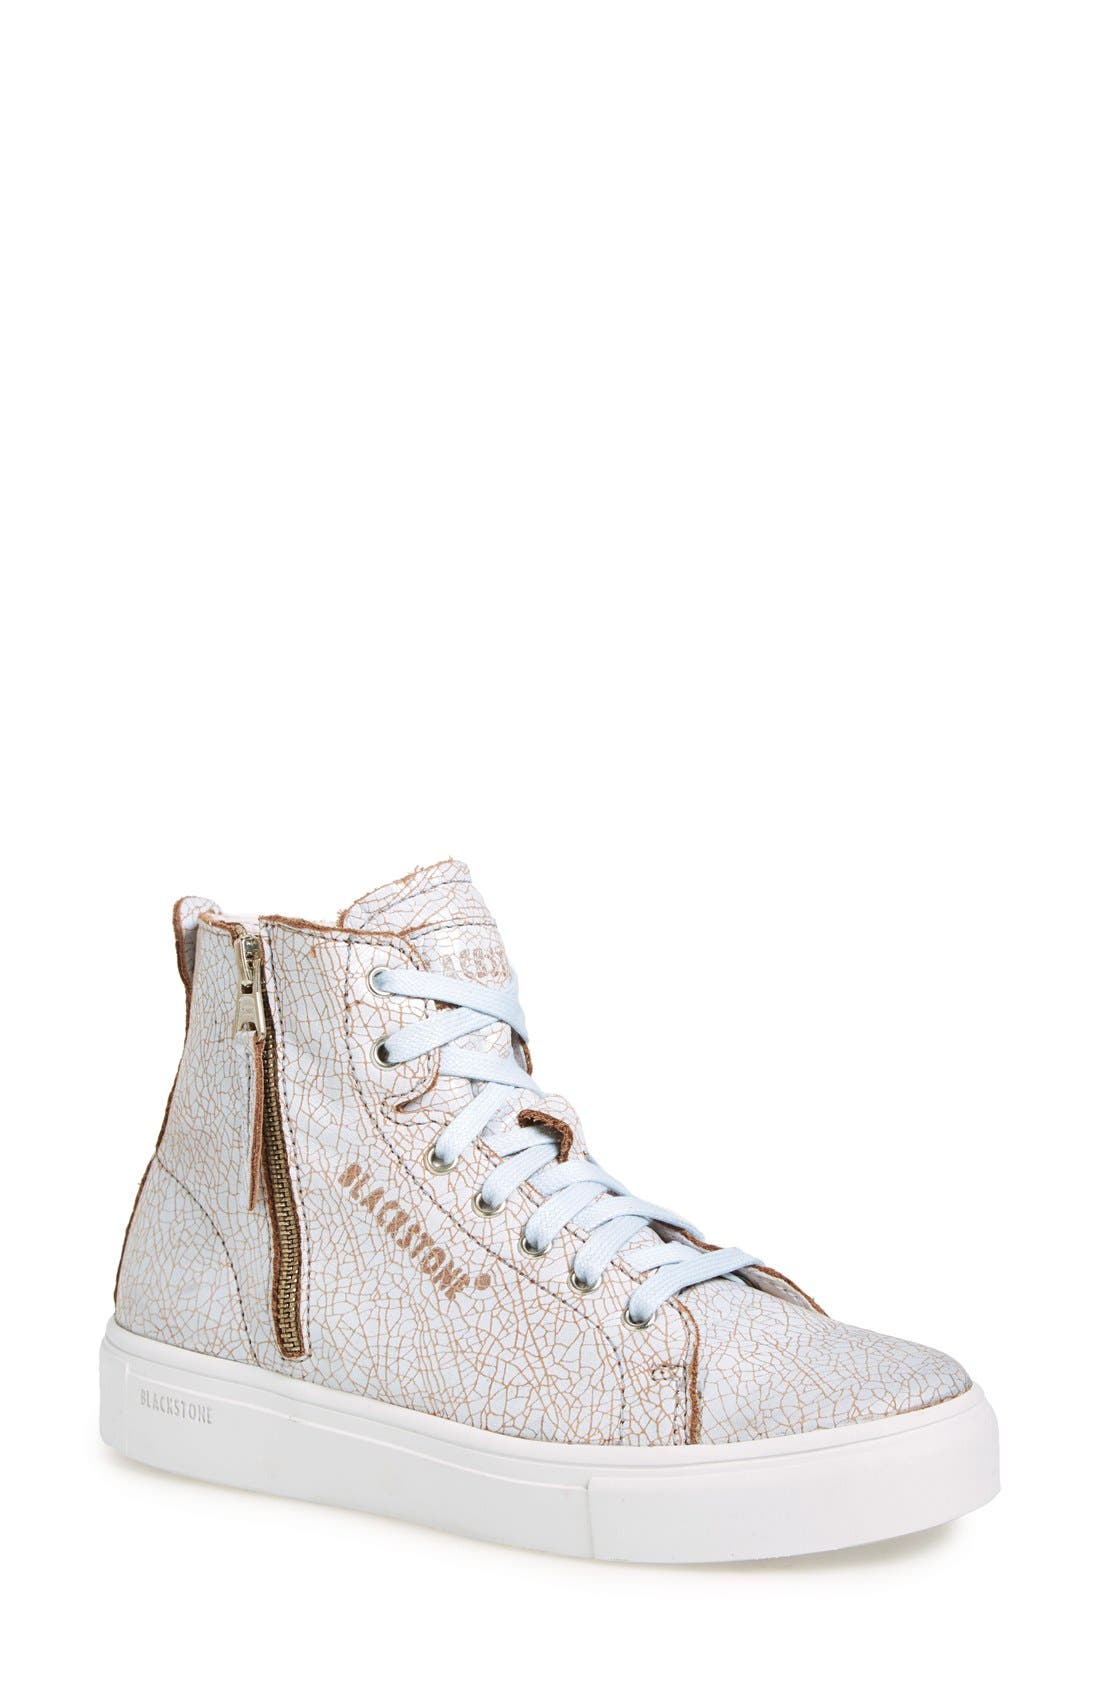 Blackstone 'LL78' Crackled High Top Platform Sneaker (Women)